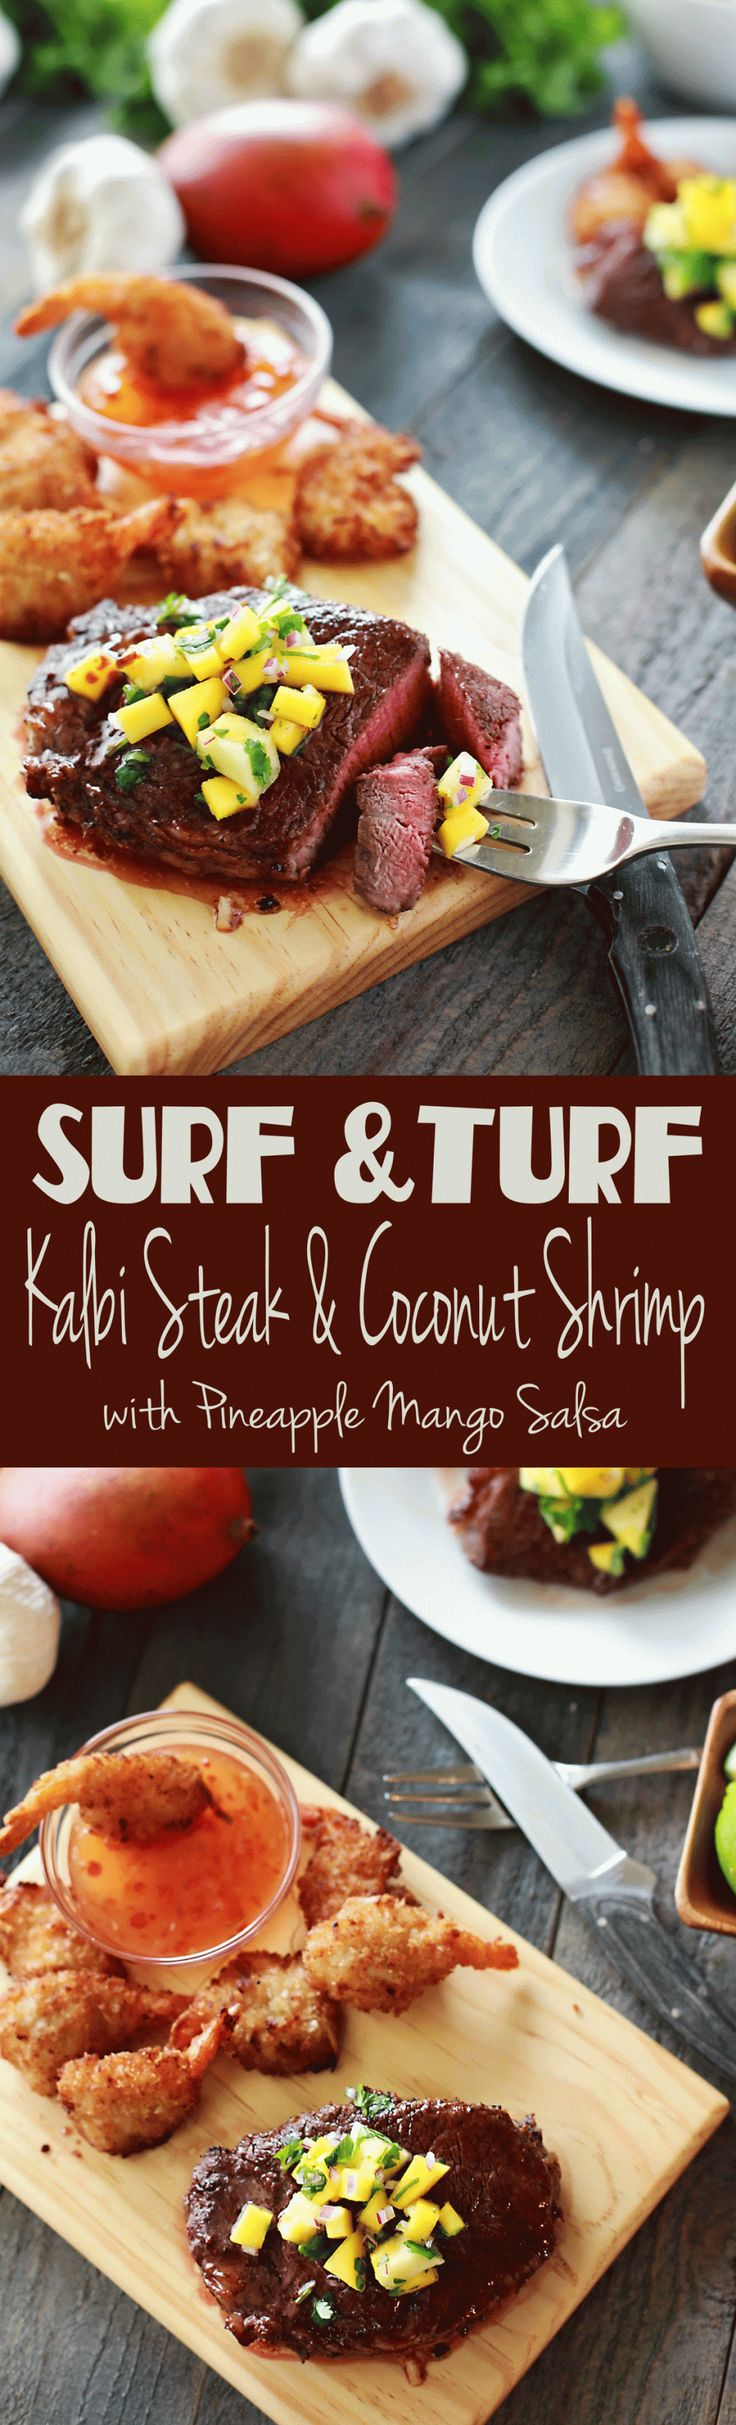 Surf and Turf: Kalbi Steak Recipe with Coconut Shrimp, topped withPineapple Mango Pico de Gallo. By Flirting with Flavor. Absolutely Incredible!!!